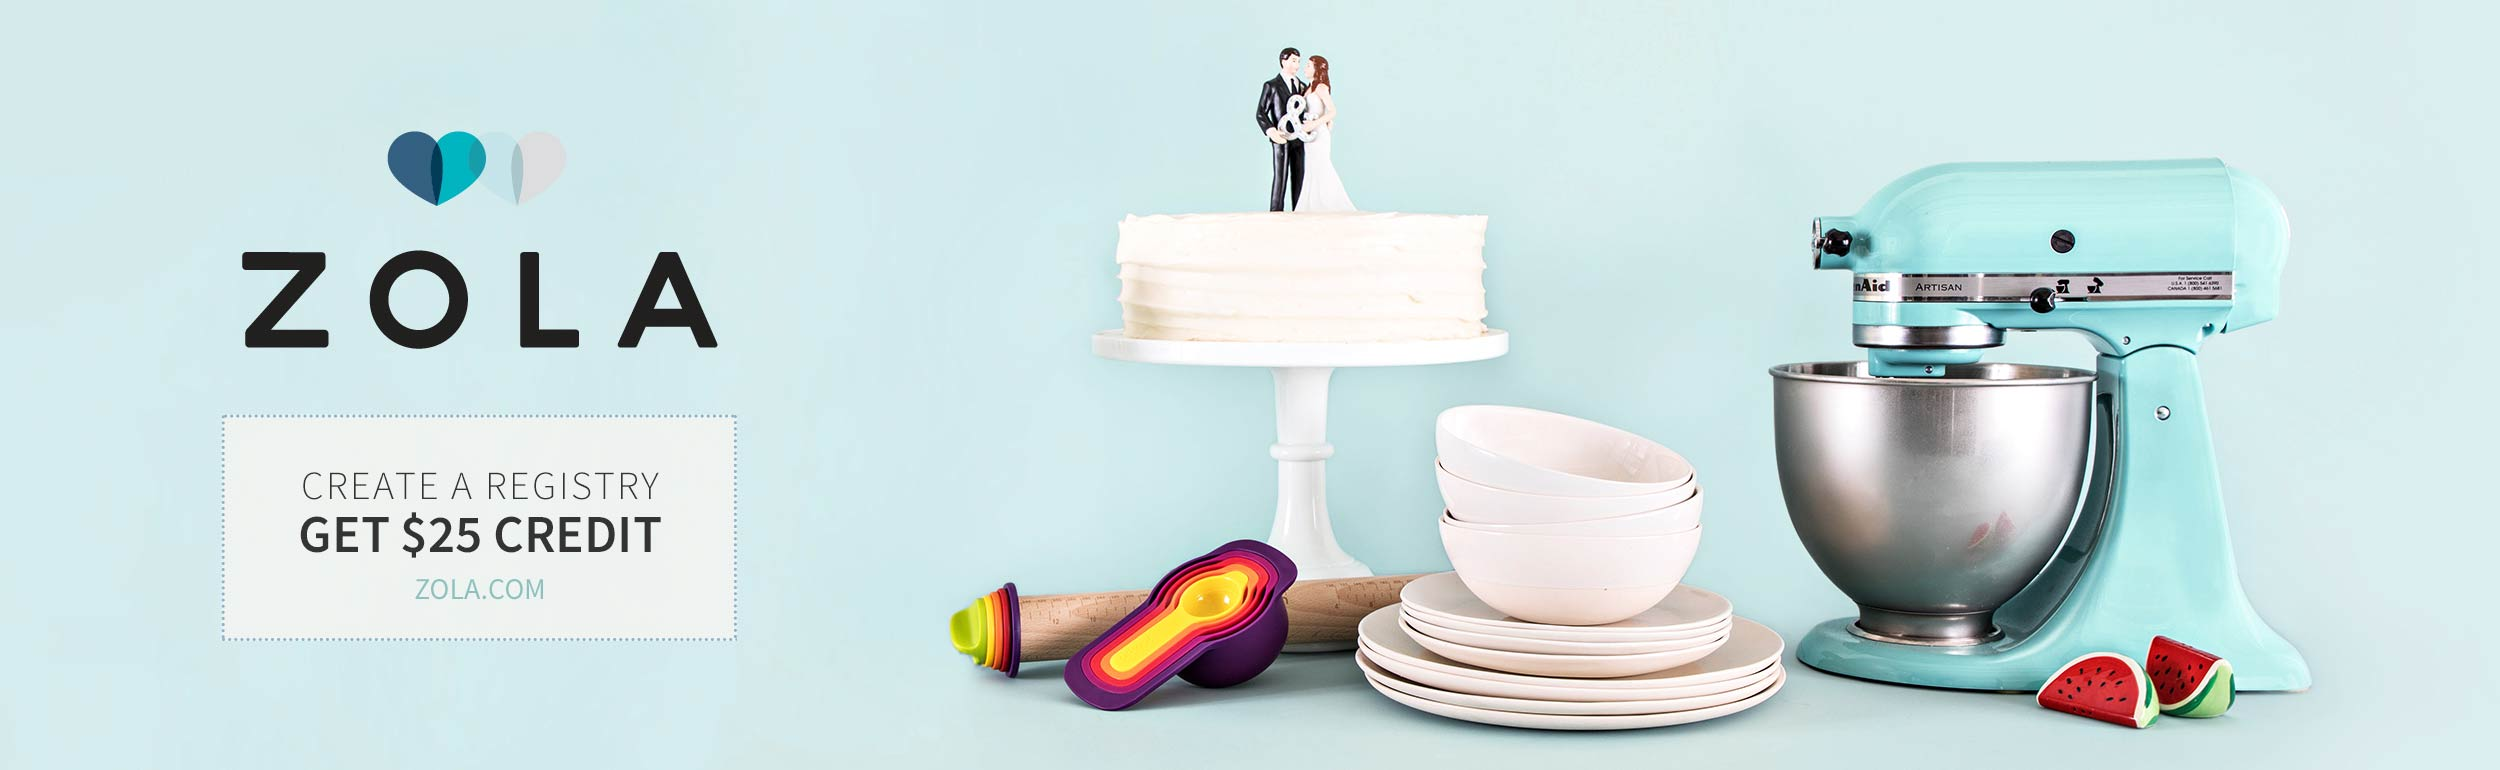 Wedding Registry - Zola & Dessy Group